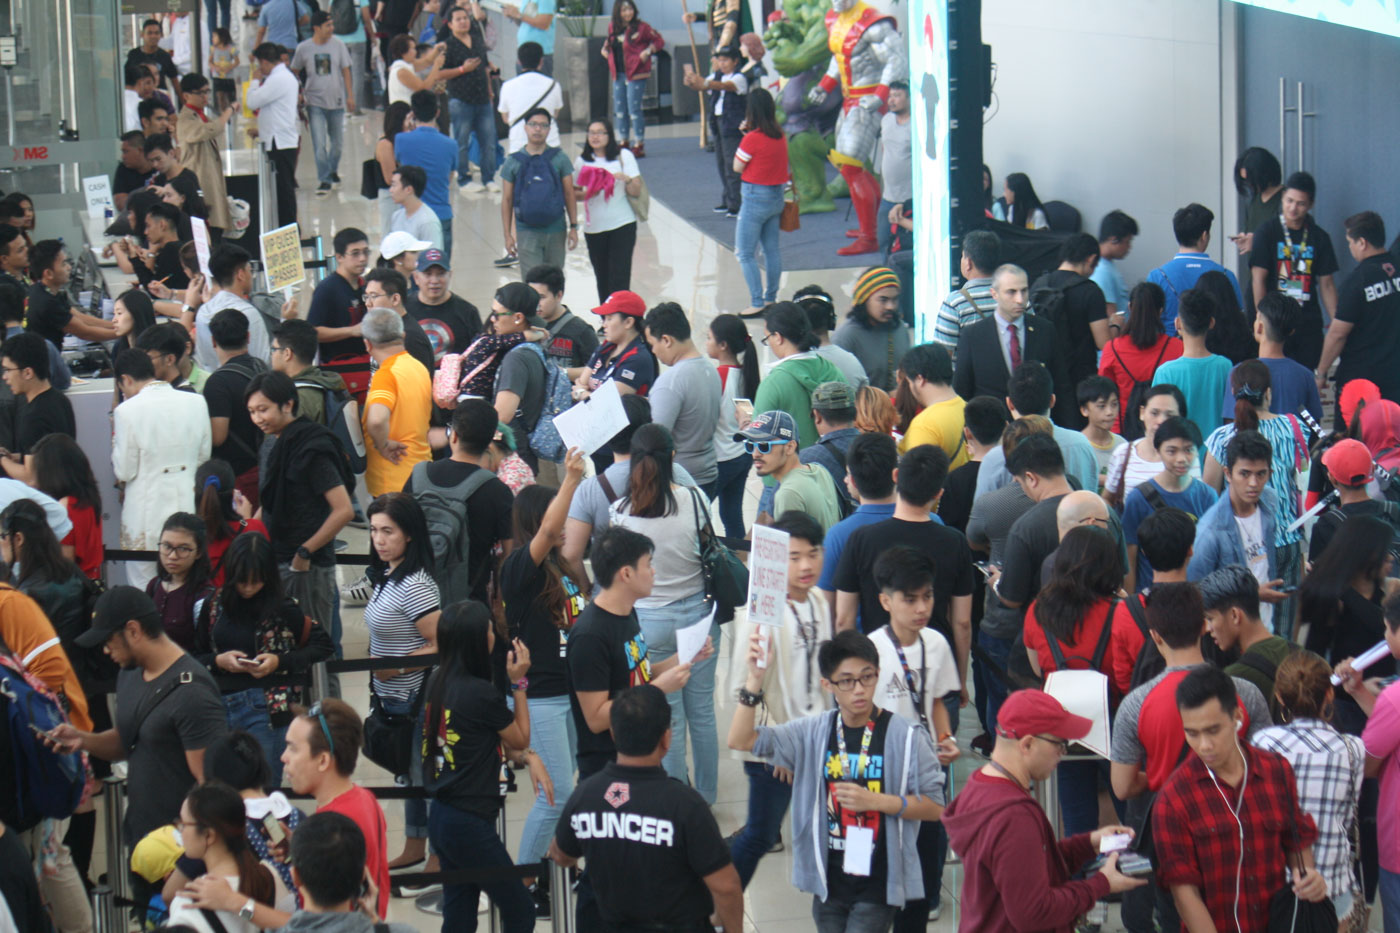 ComicCon Asia convention or master of confusion? | Movie TV Tech